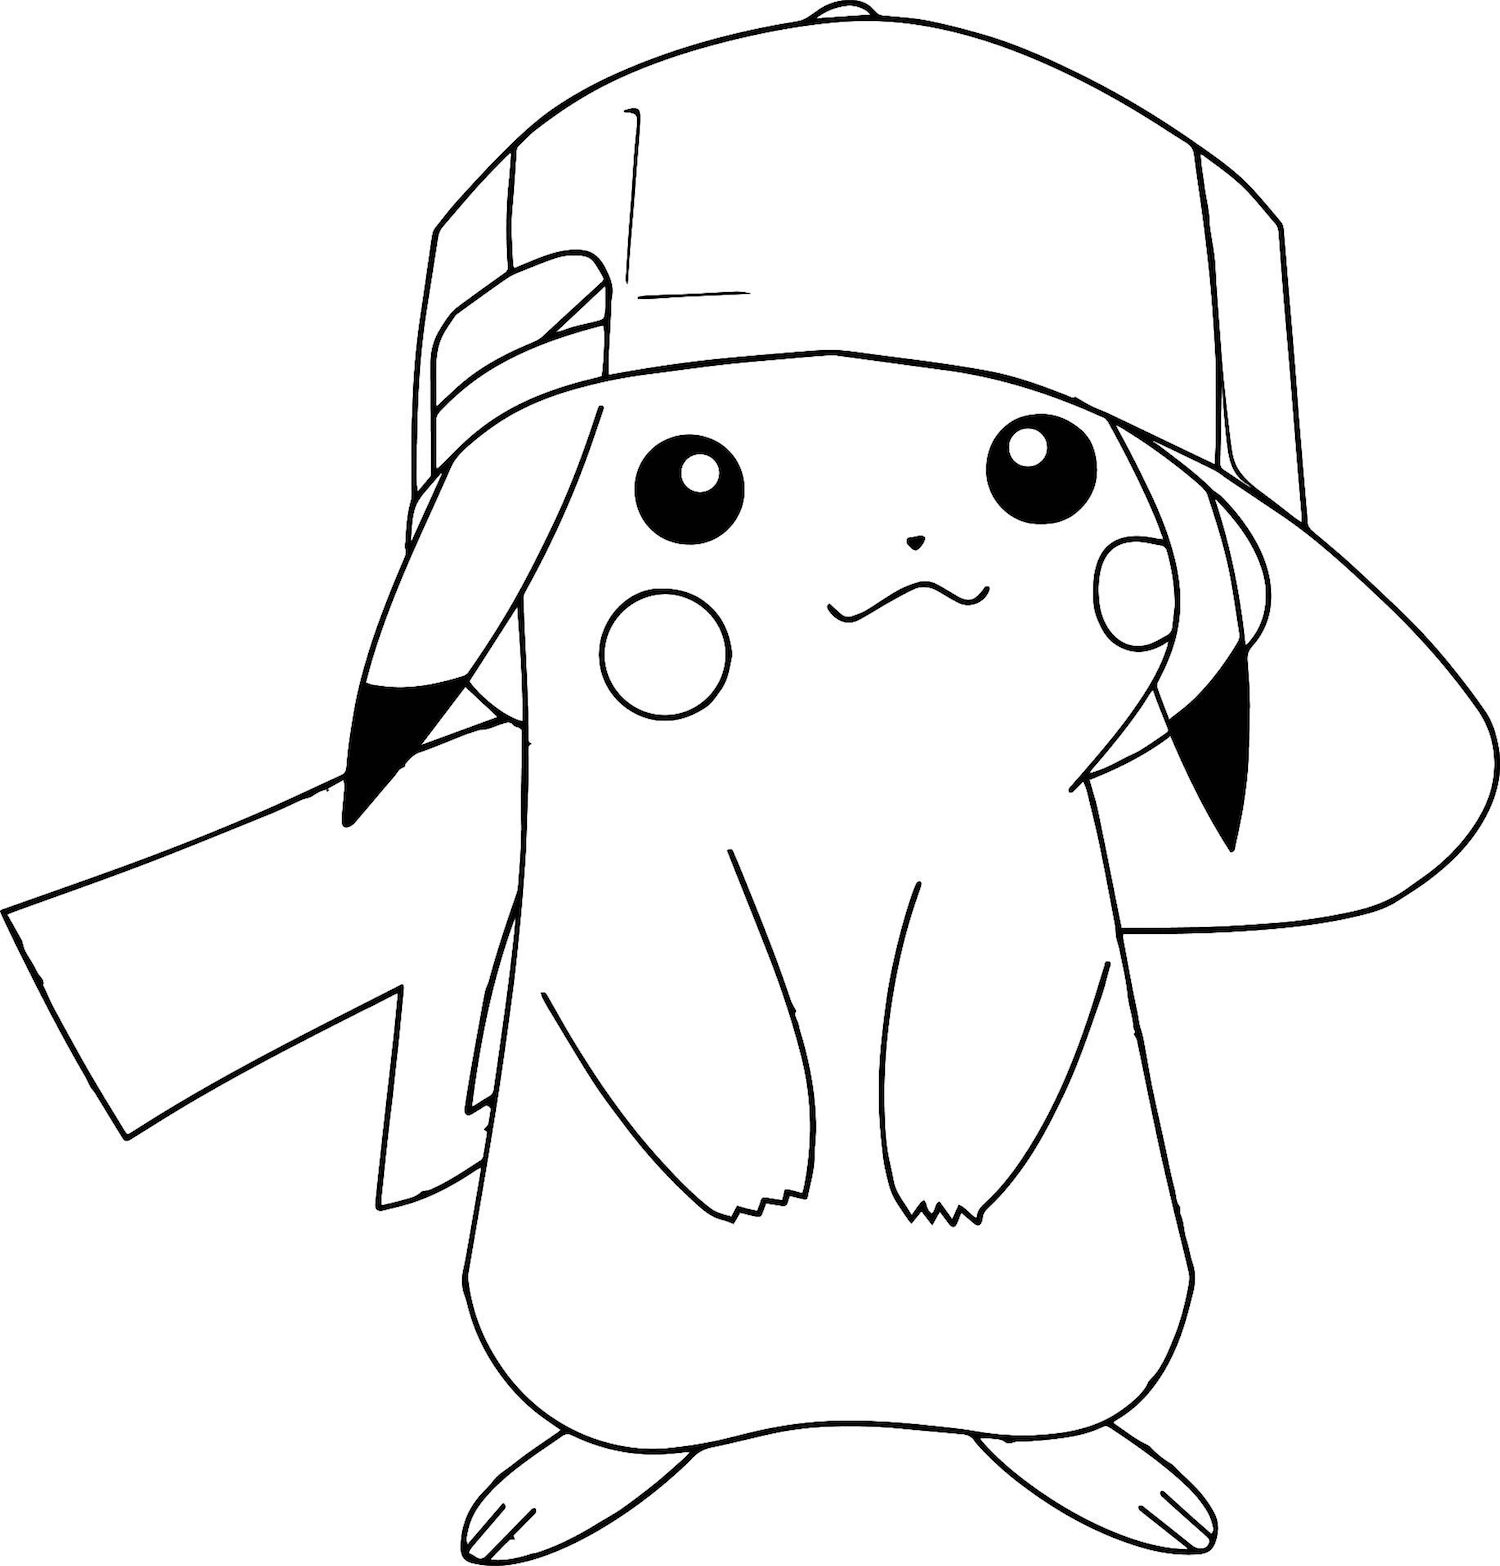 colouring in pokemon pokemon coloring pages free and printable pokemon colouring in